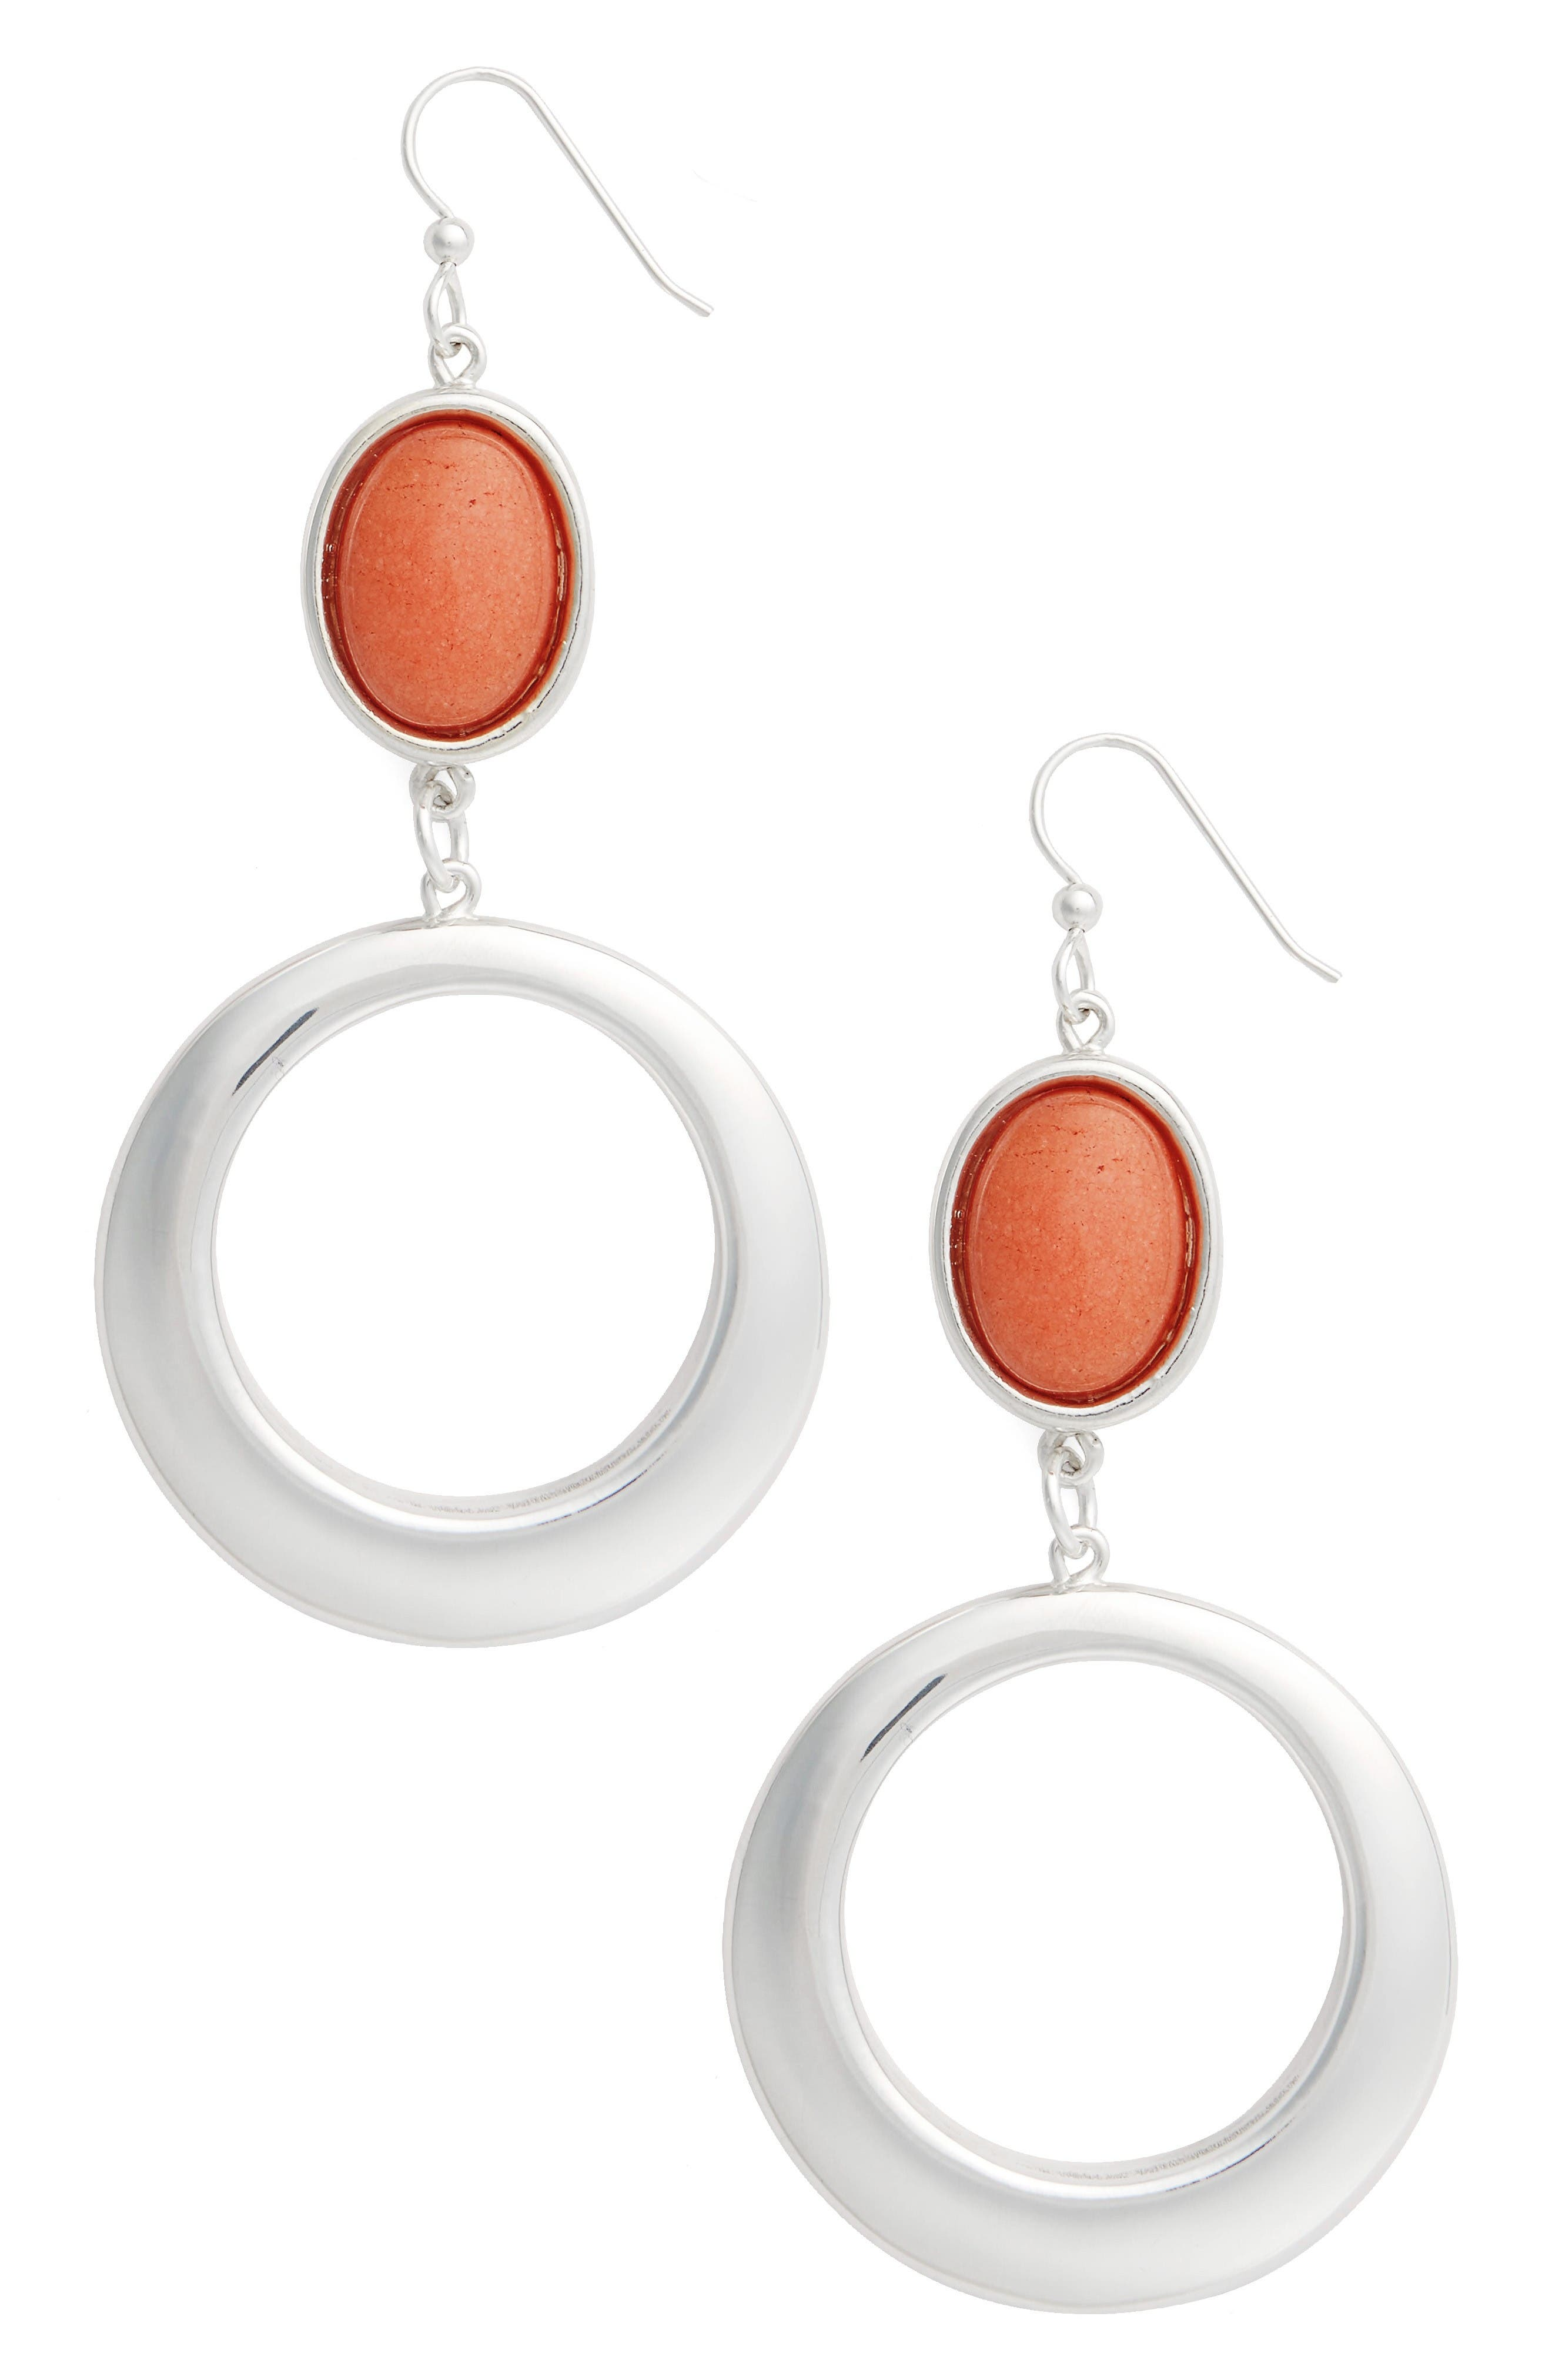 Semiprecious Stone Hoop Drop Earrings,                         Main,                         color, Orange/ Silver